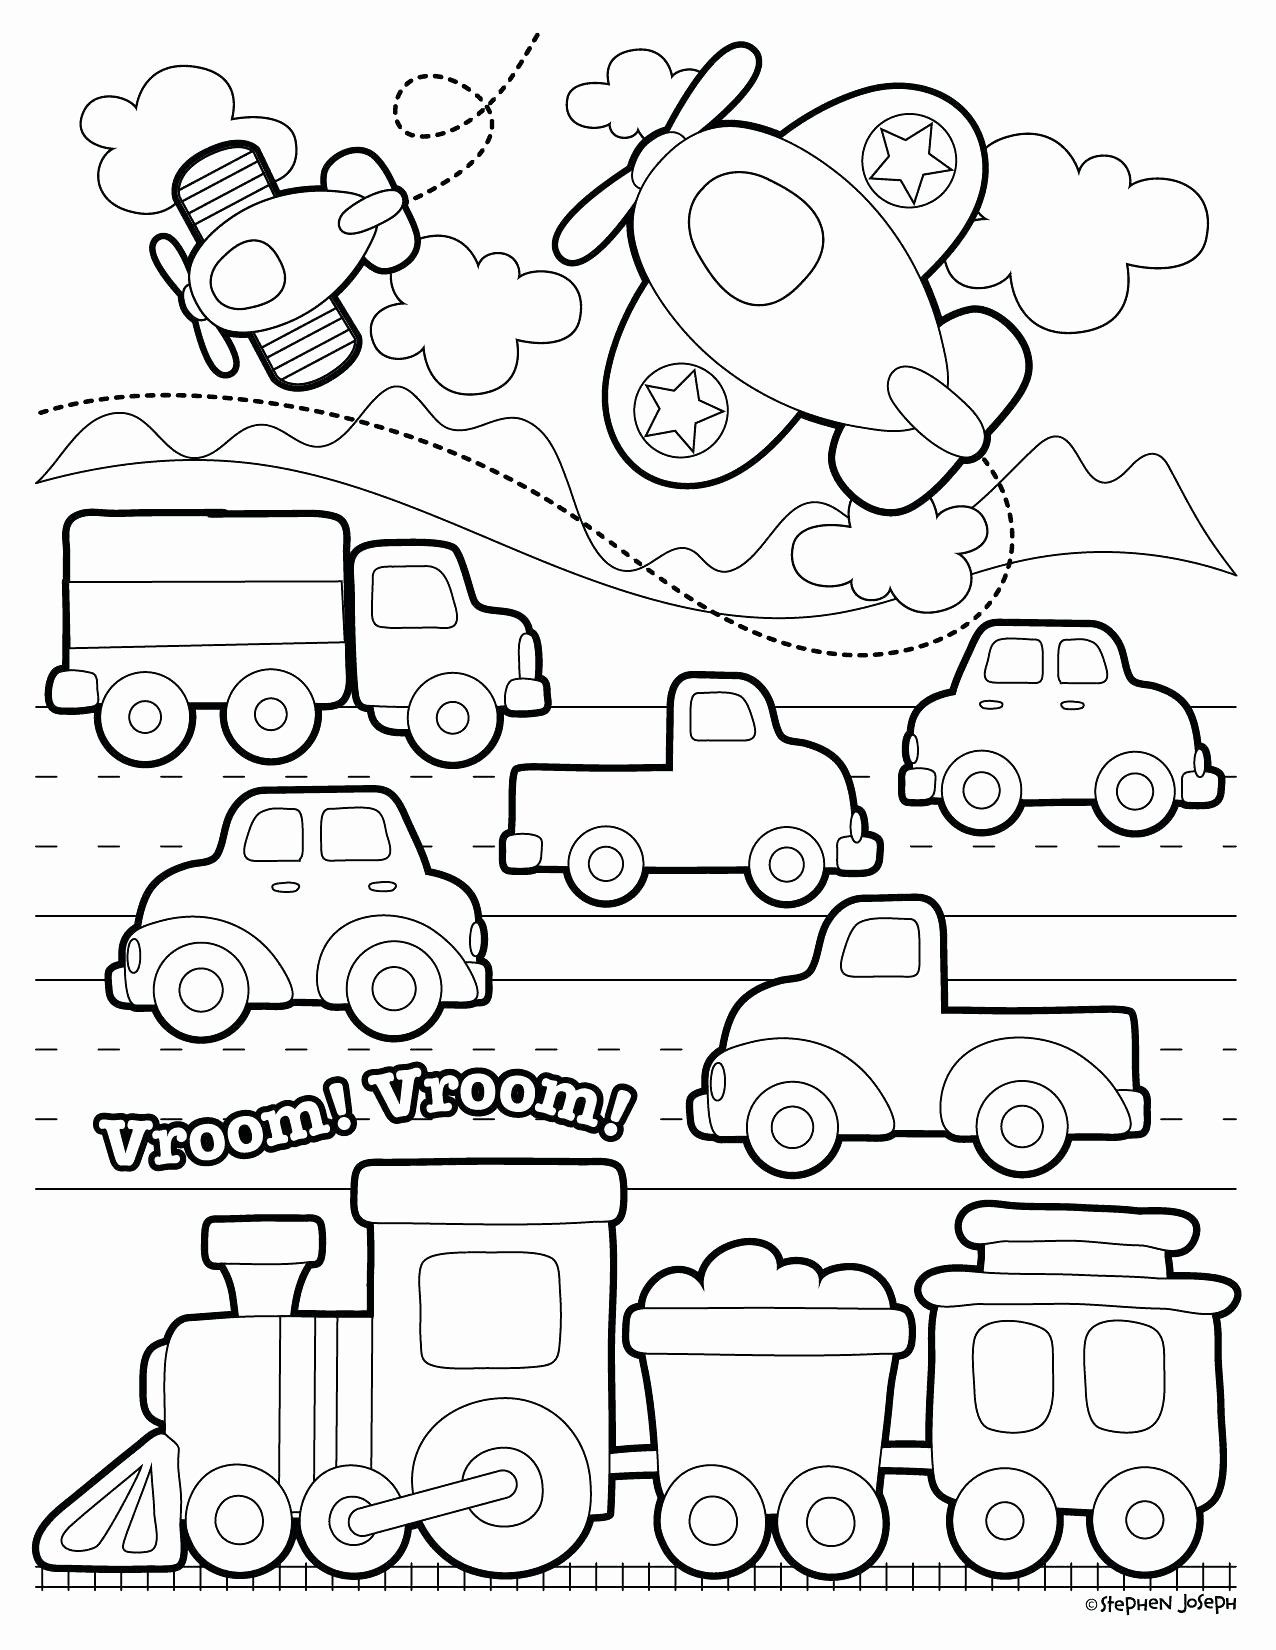 Transportation Coloring Pages For Toddlers Unique Land Transport Coloring Pages Redhatshe Preschool Coloring Pages Thanksgiving Coloring Pages Coloring Pages